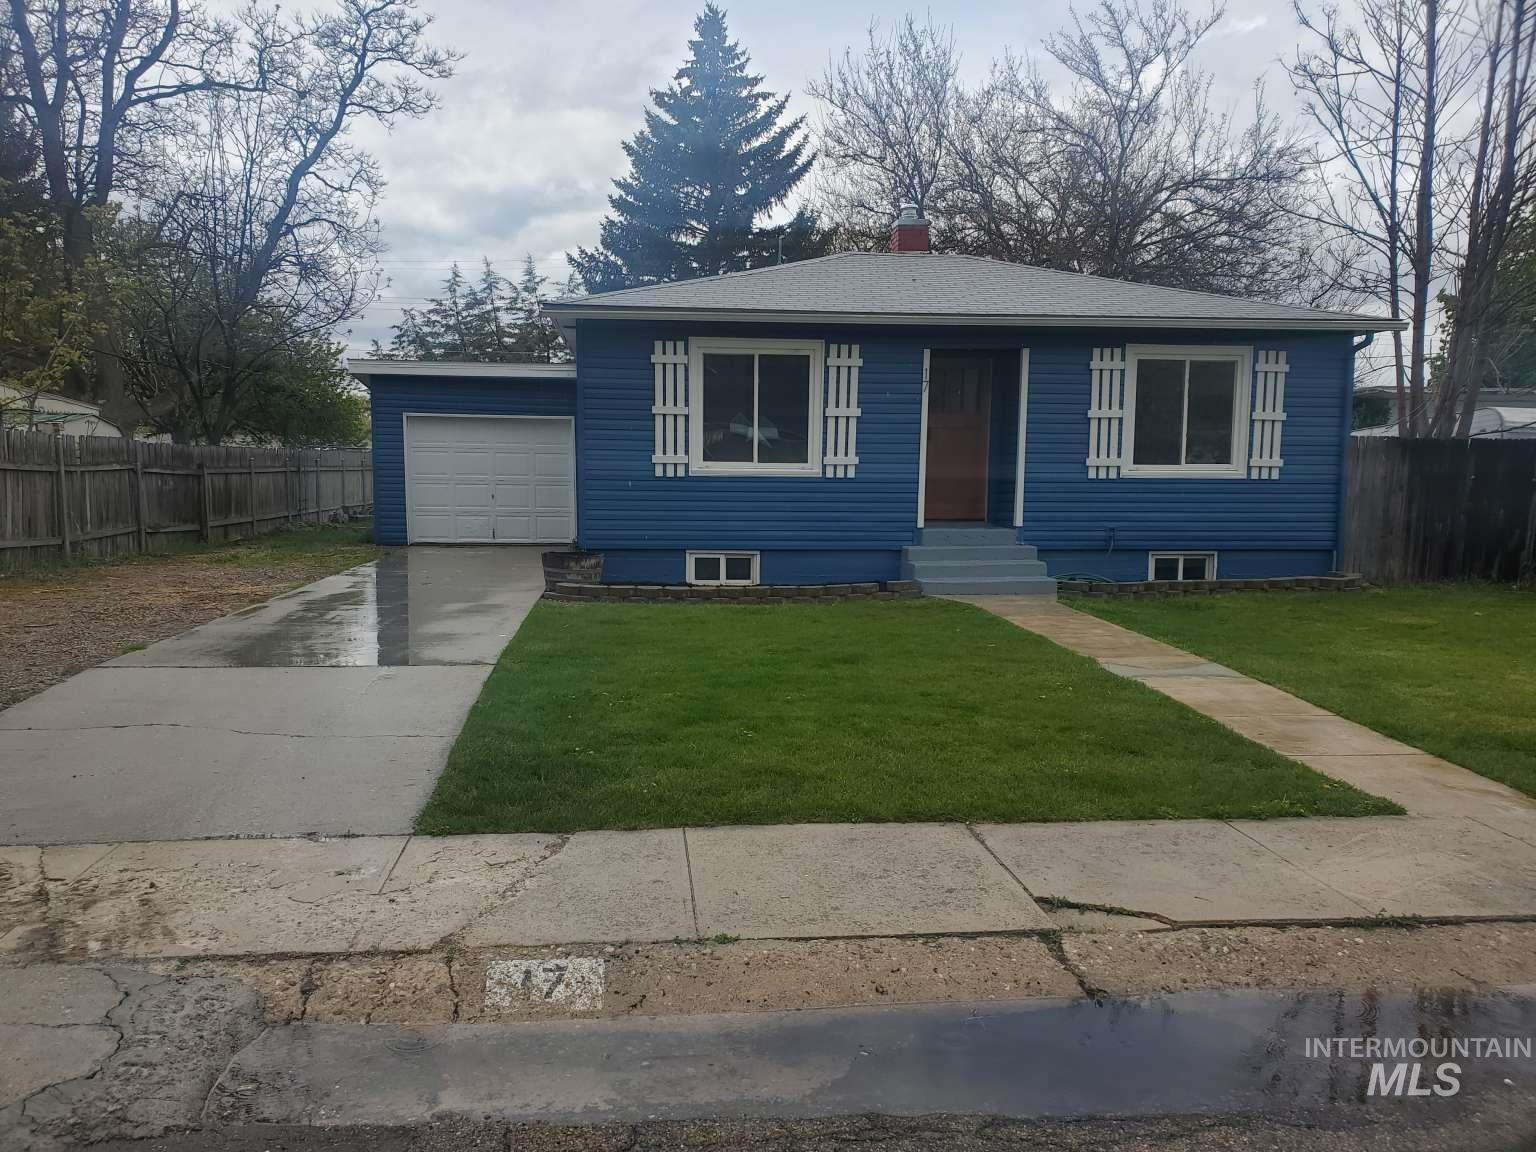 17 N State St Property Photo - Nampa, ID real estate listing